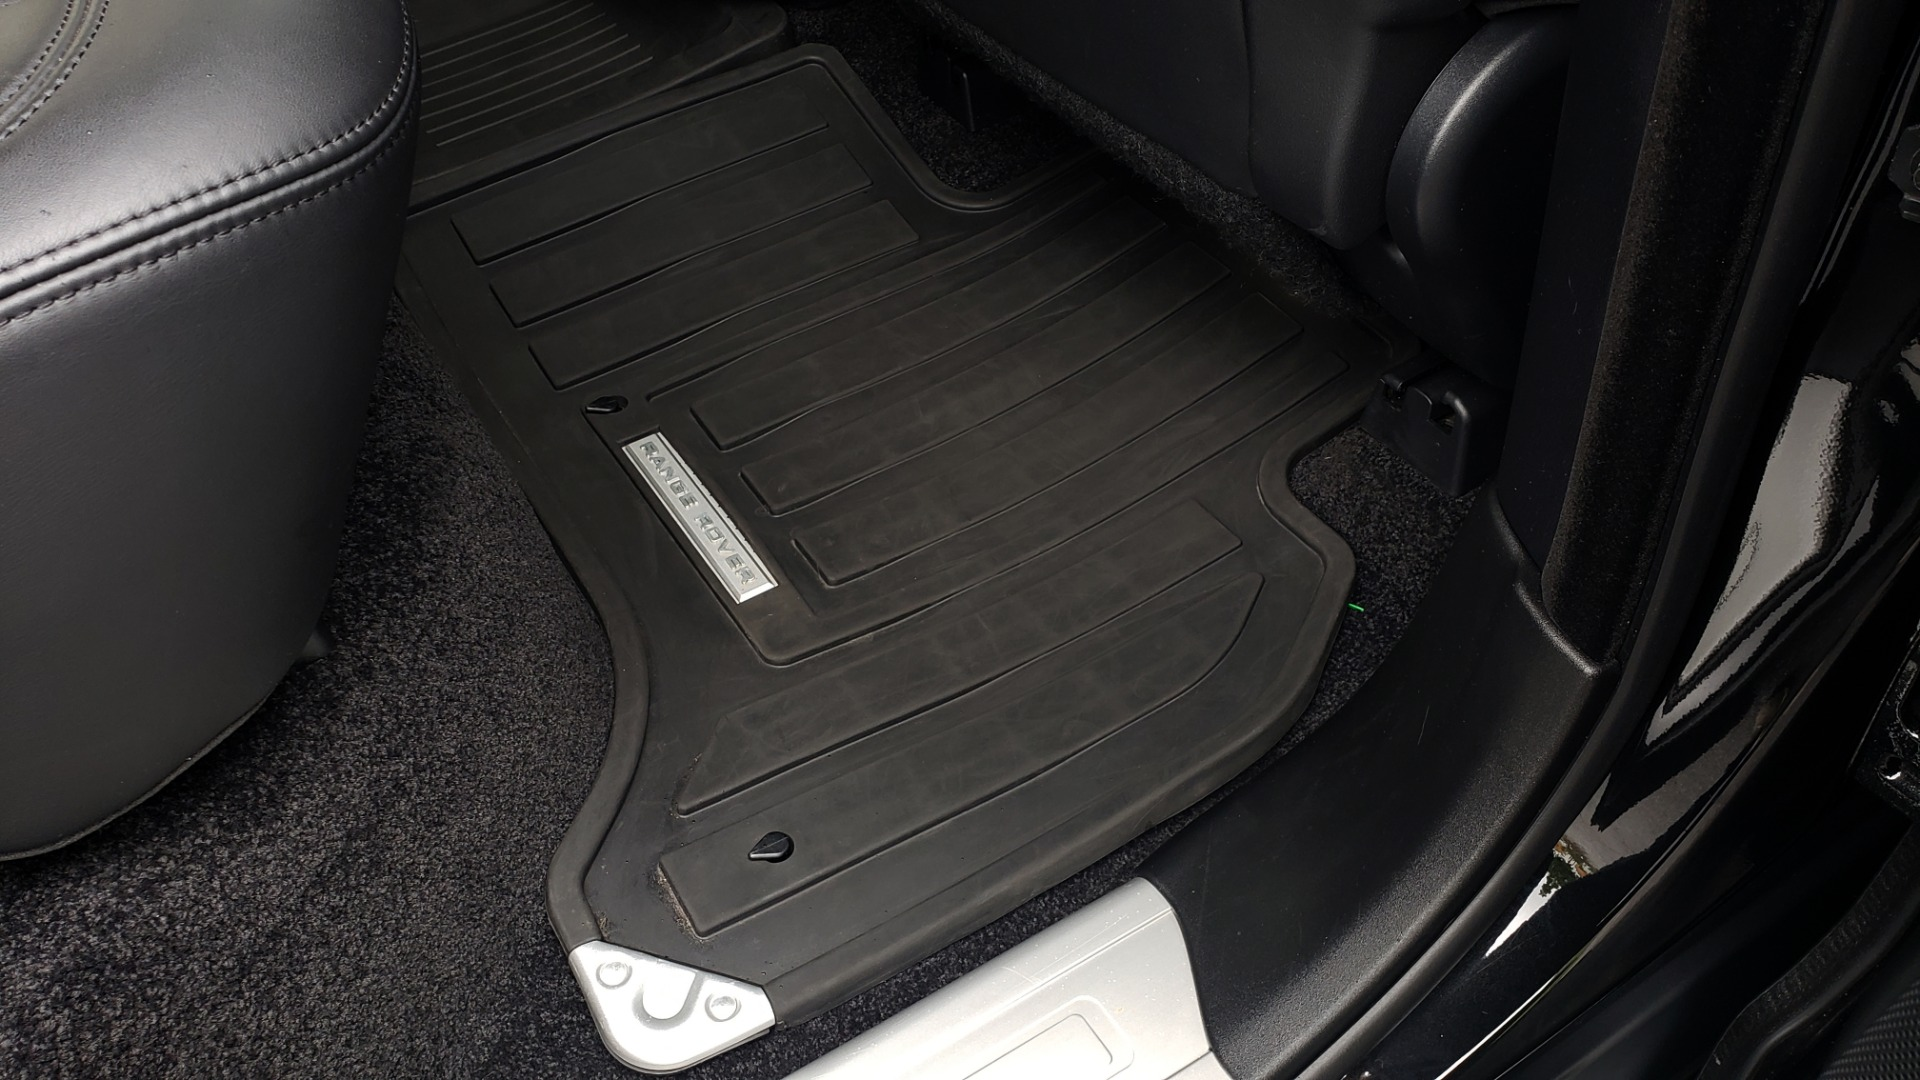 Used 2016 Land Rover Range Rover HSE 3.0L SC V6 / NAV / PANO-ROOF / VENT SEATS / REARVIEW / BLIND SPOT for sale Sold at Formula Imports in Charlotte NC 28227 80